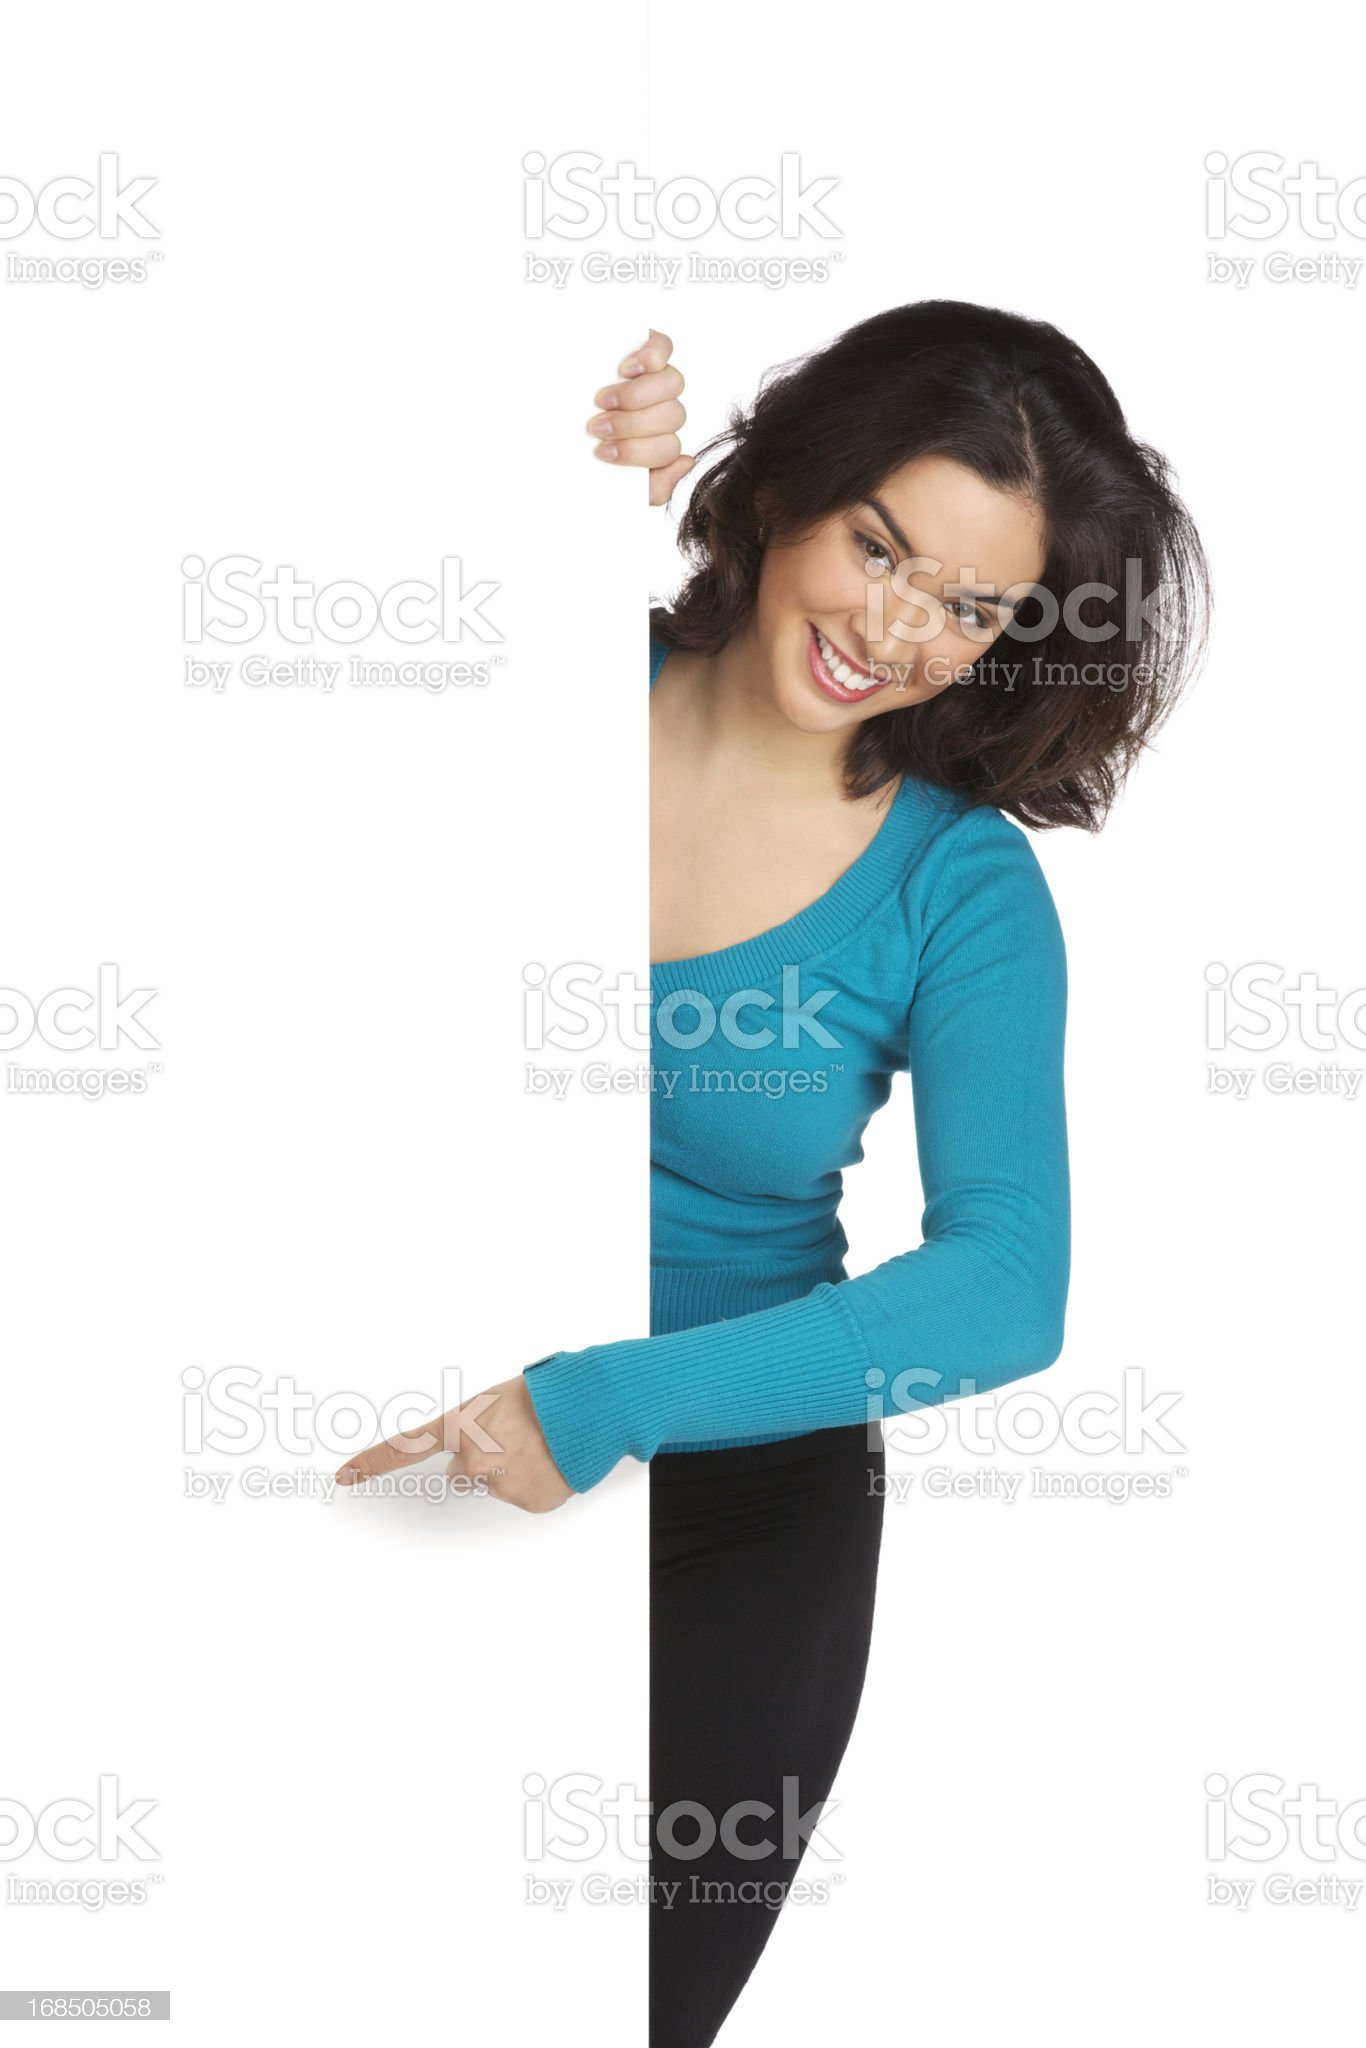 Young Woman Pointing Around a Blank Wall - Isolated royalty-free stock photo